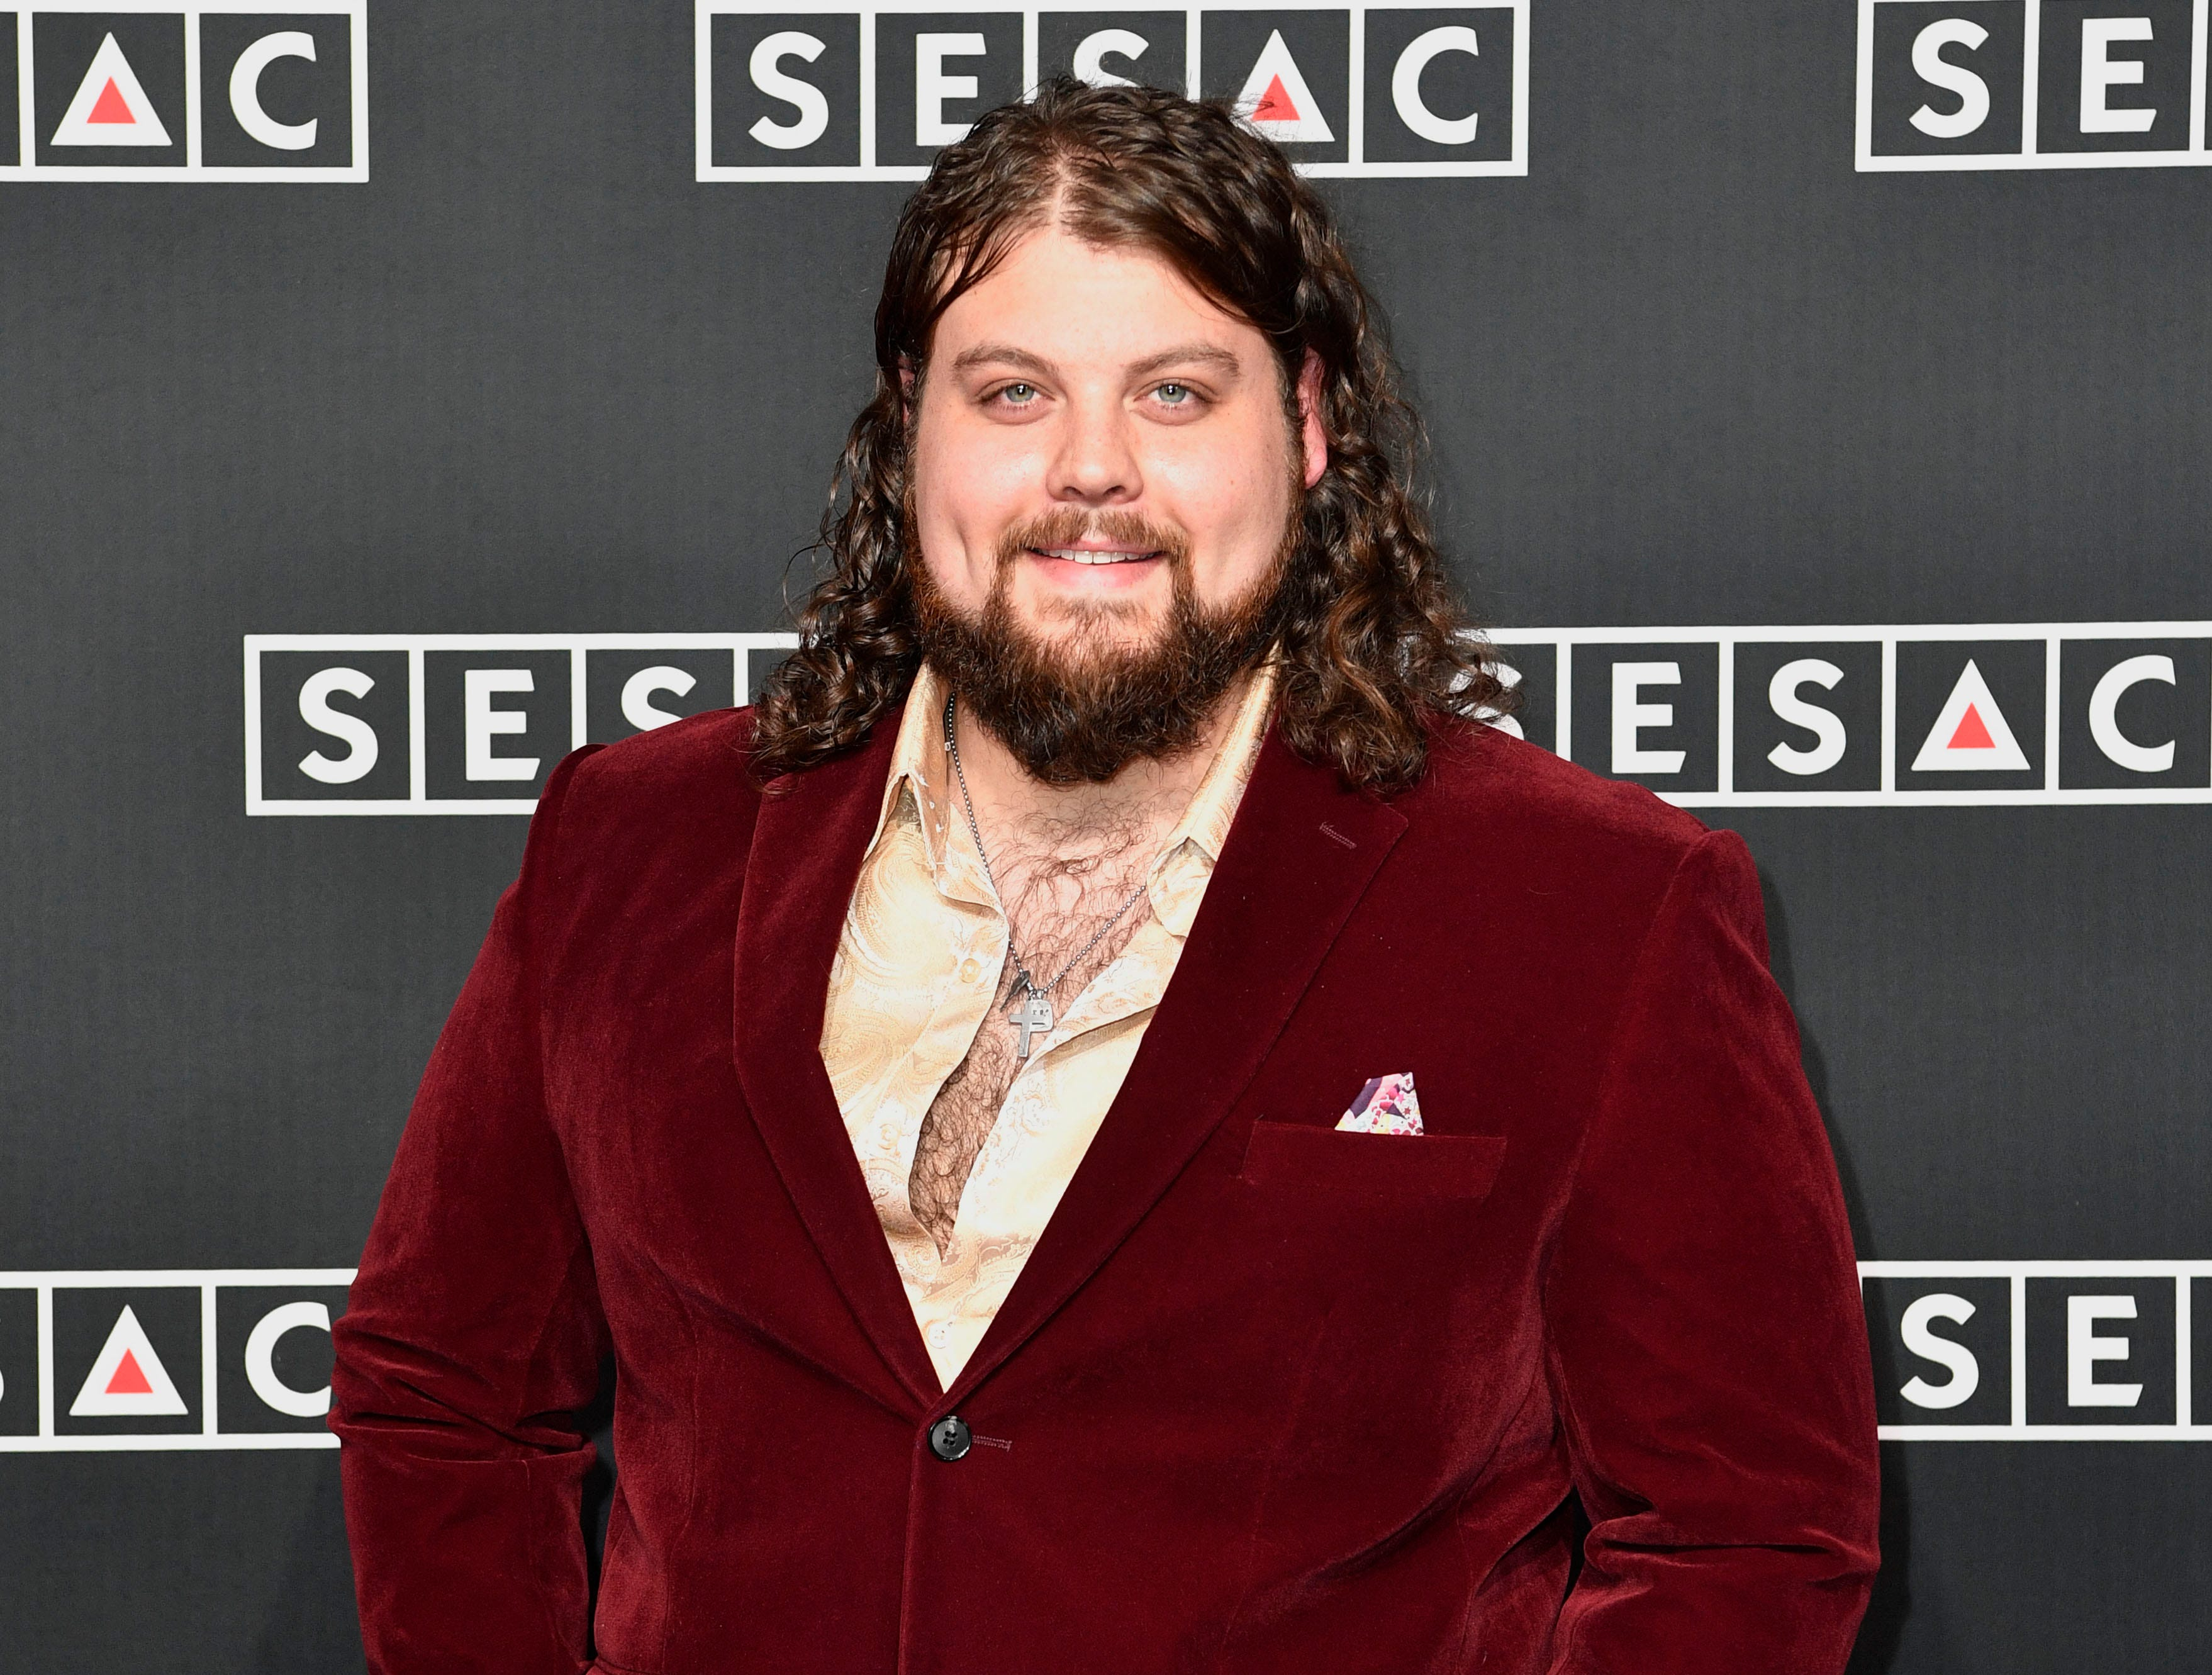 Dillon Carmichael on the red carpet at the SESAC Nashville Music Awards at the Country Music Hall of Fame and Museum Sunday Nov. 11, 2018, in Nashville, Tenn.